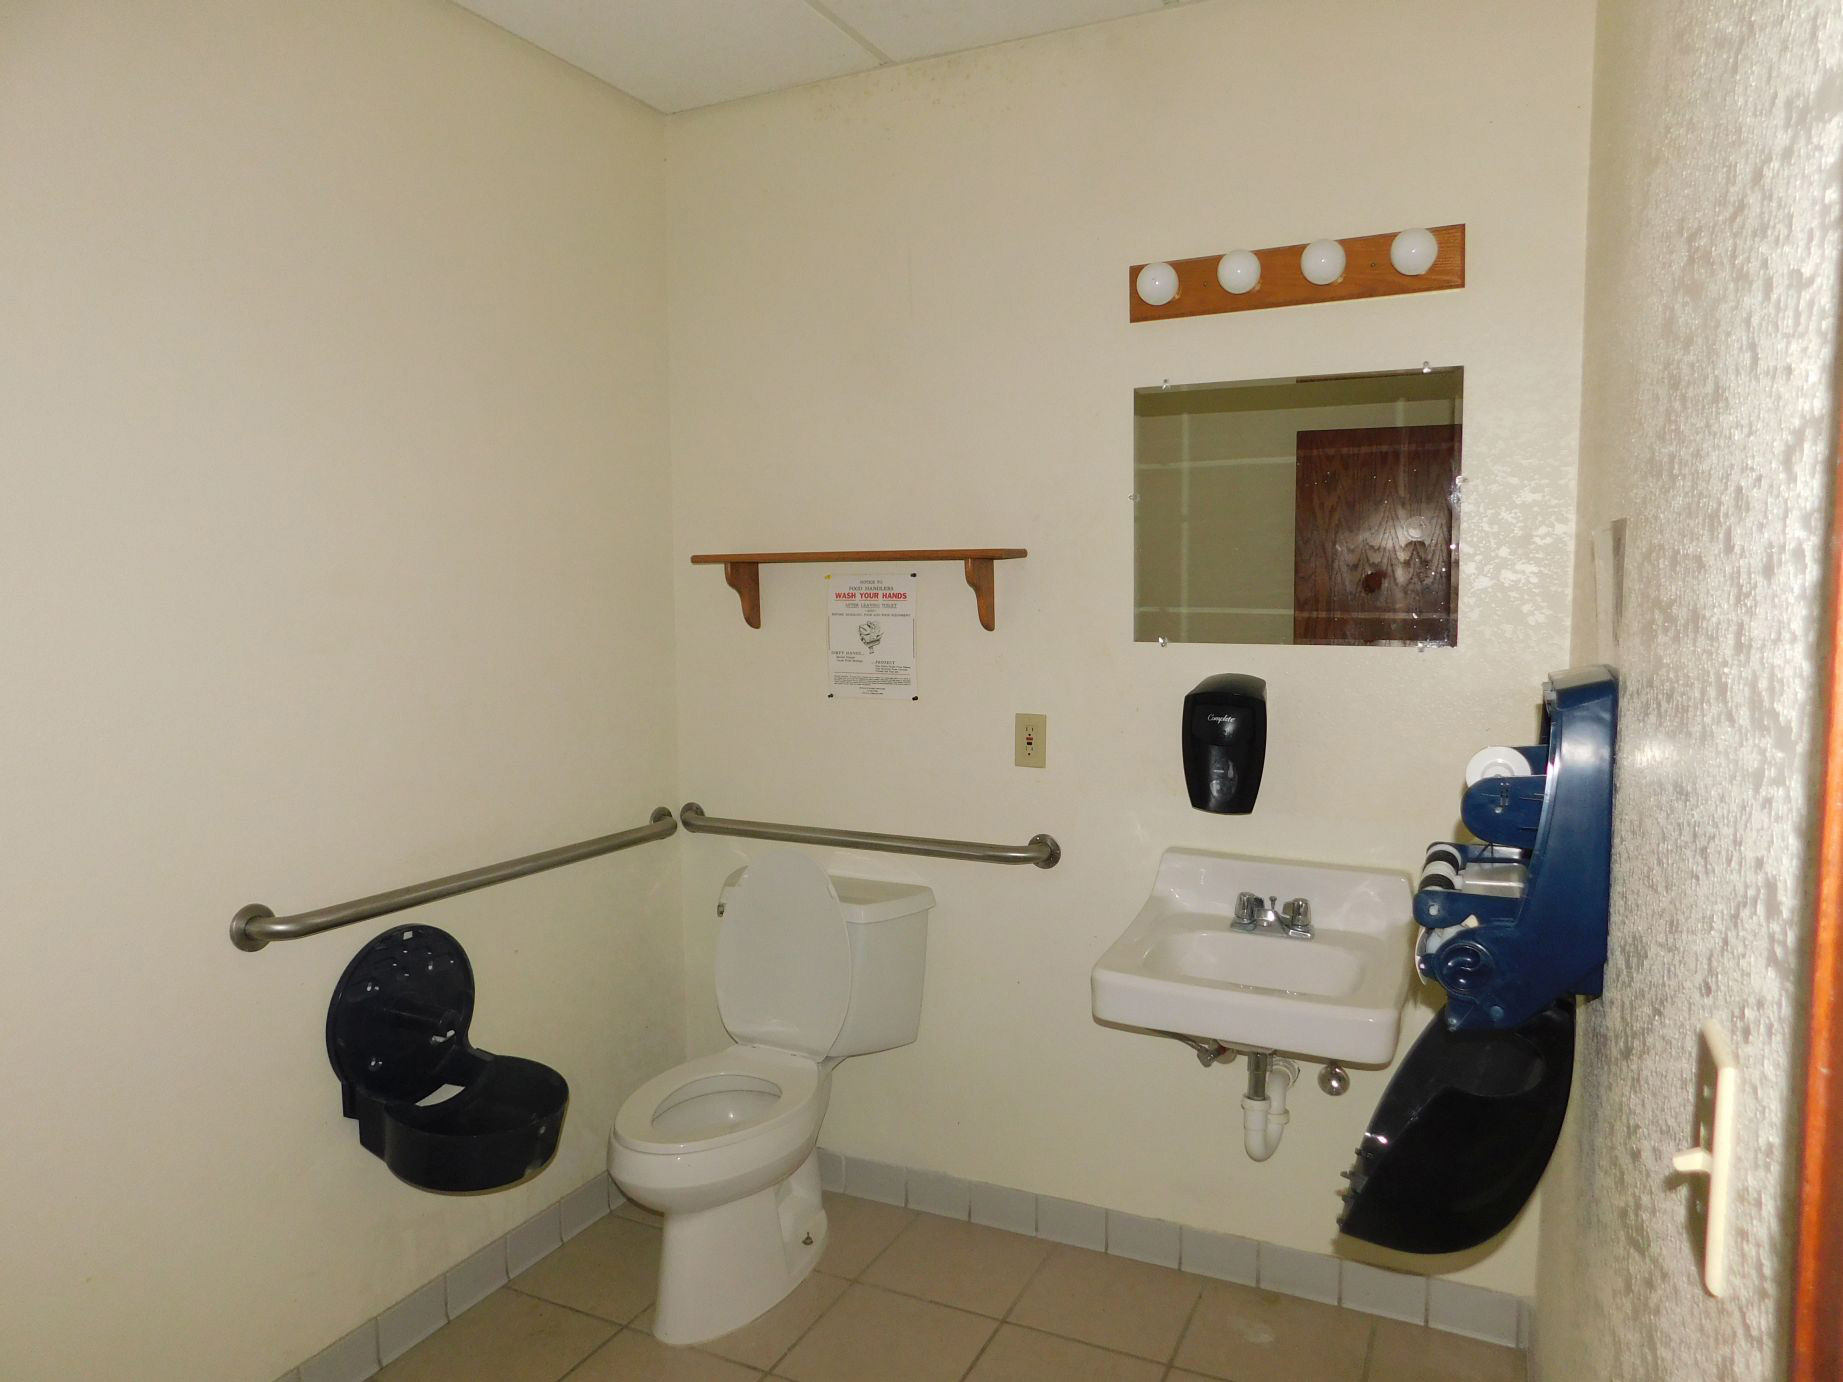 Parcel-3-handicap-bathroom.jpg